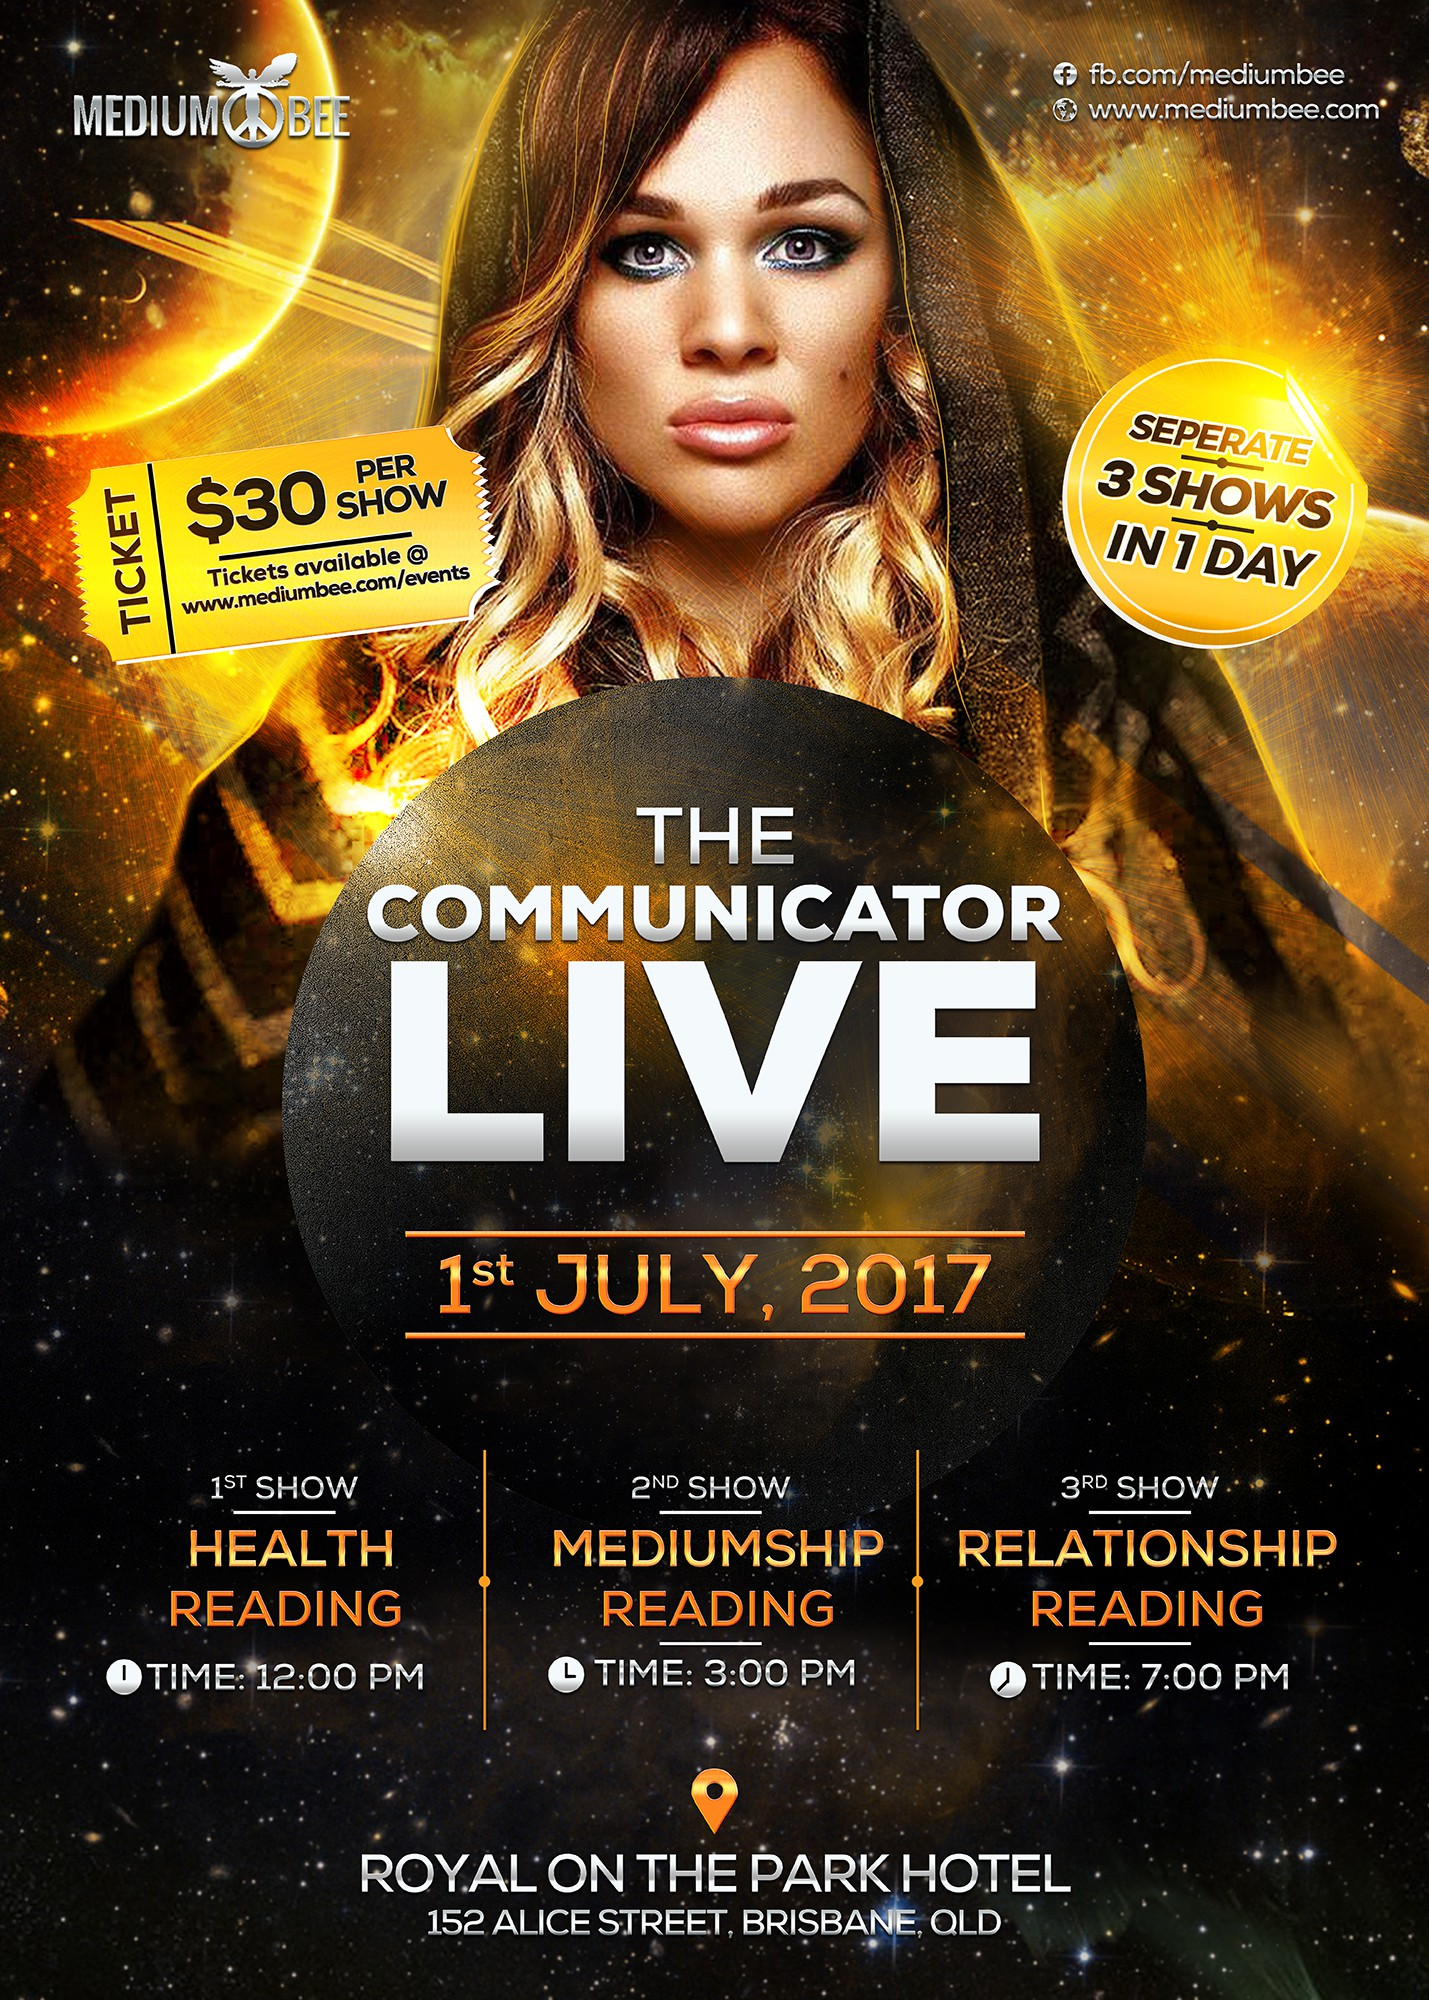 Promo Poster for upcoming spiritual/psychic Show